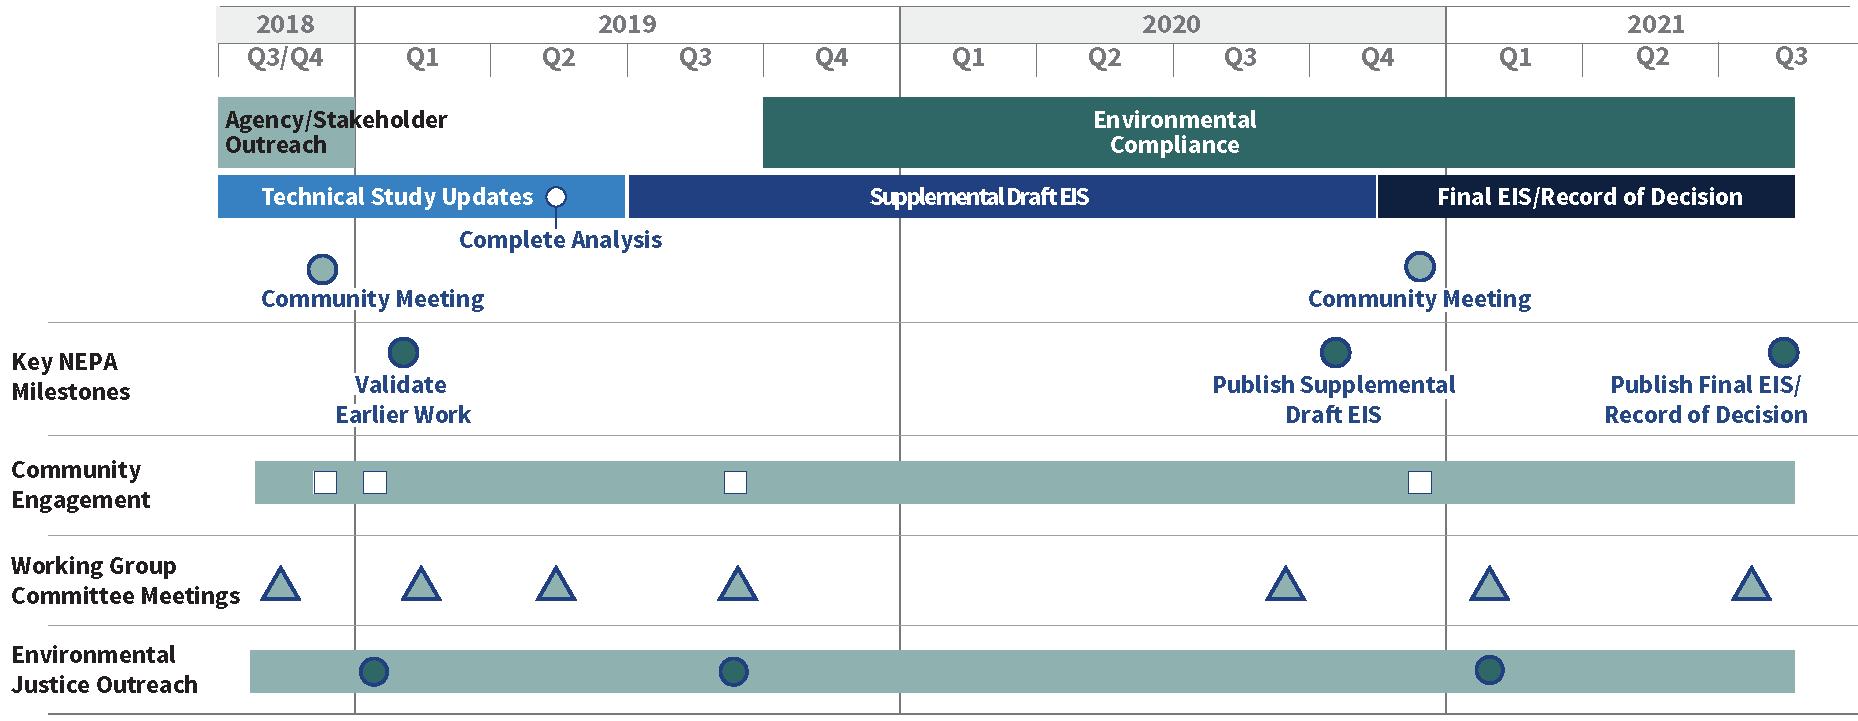 A timeline of the project's major milestones from 2018 to 2021. Agency/stakeholder outreach occurred in late 2018. The Environmental Compliance phase started in late 2019 and will continue until the Final EIS/ Record of Decision is published in 2021. Technical study updates were made to the original EIS technical studies and completed in mid-2019 and then preparation of the Supplemental Draft EIS work began. After the Supplemental Draft EIS was published on November 20, 2020 the Final EIS/ Record of Decision work began. There was a community meeting held at the end of 2018 and there will be another on December 3, 2020 to review the Supplemental Draft EIS. Community Engagement and Environmental Justice Outreach have occurred throughout the project and will continue until the Final EIS is published. There were multiple Working Group Meetings leading up to the Environmental Compliance phase and there are two more working group meetings planned in 2021.